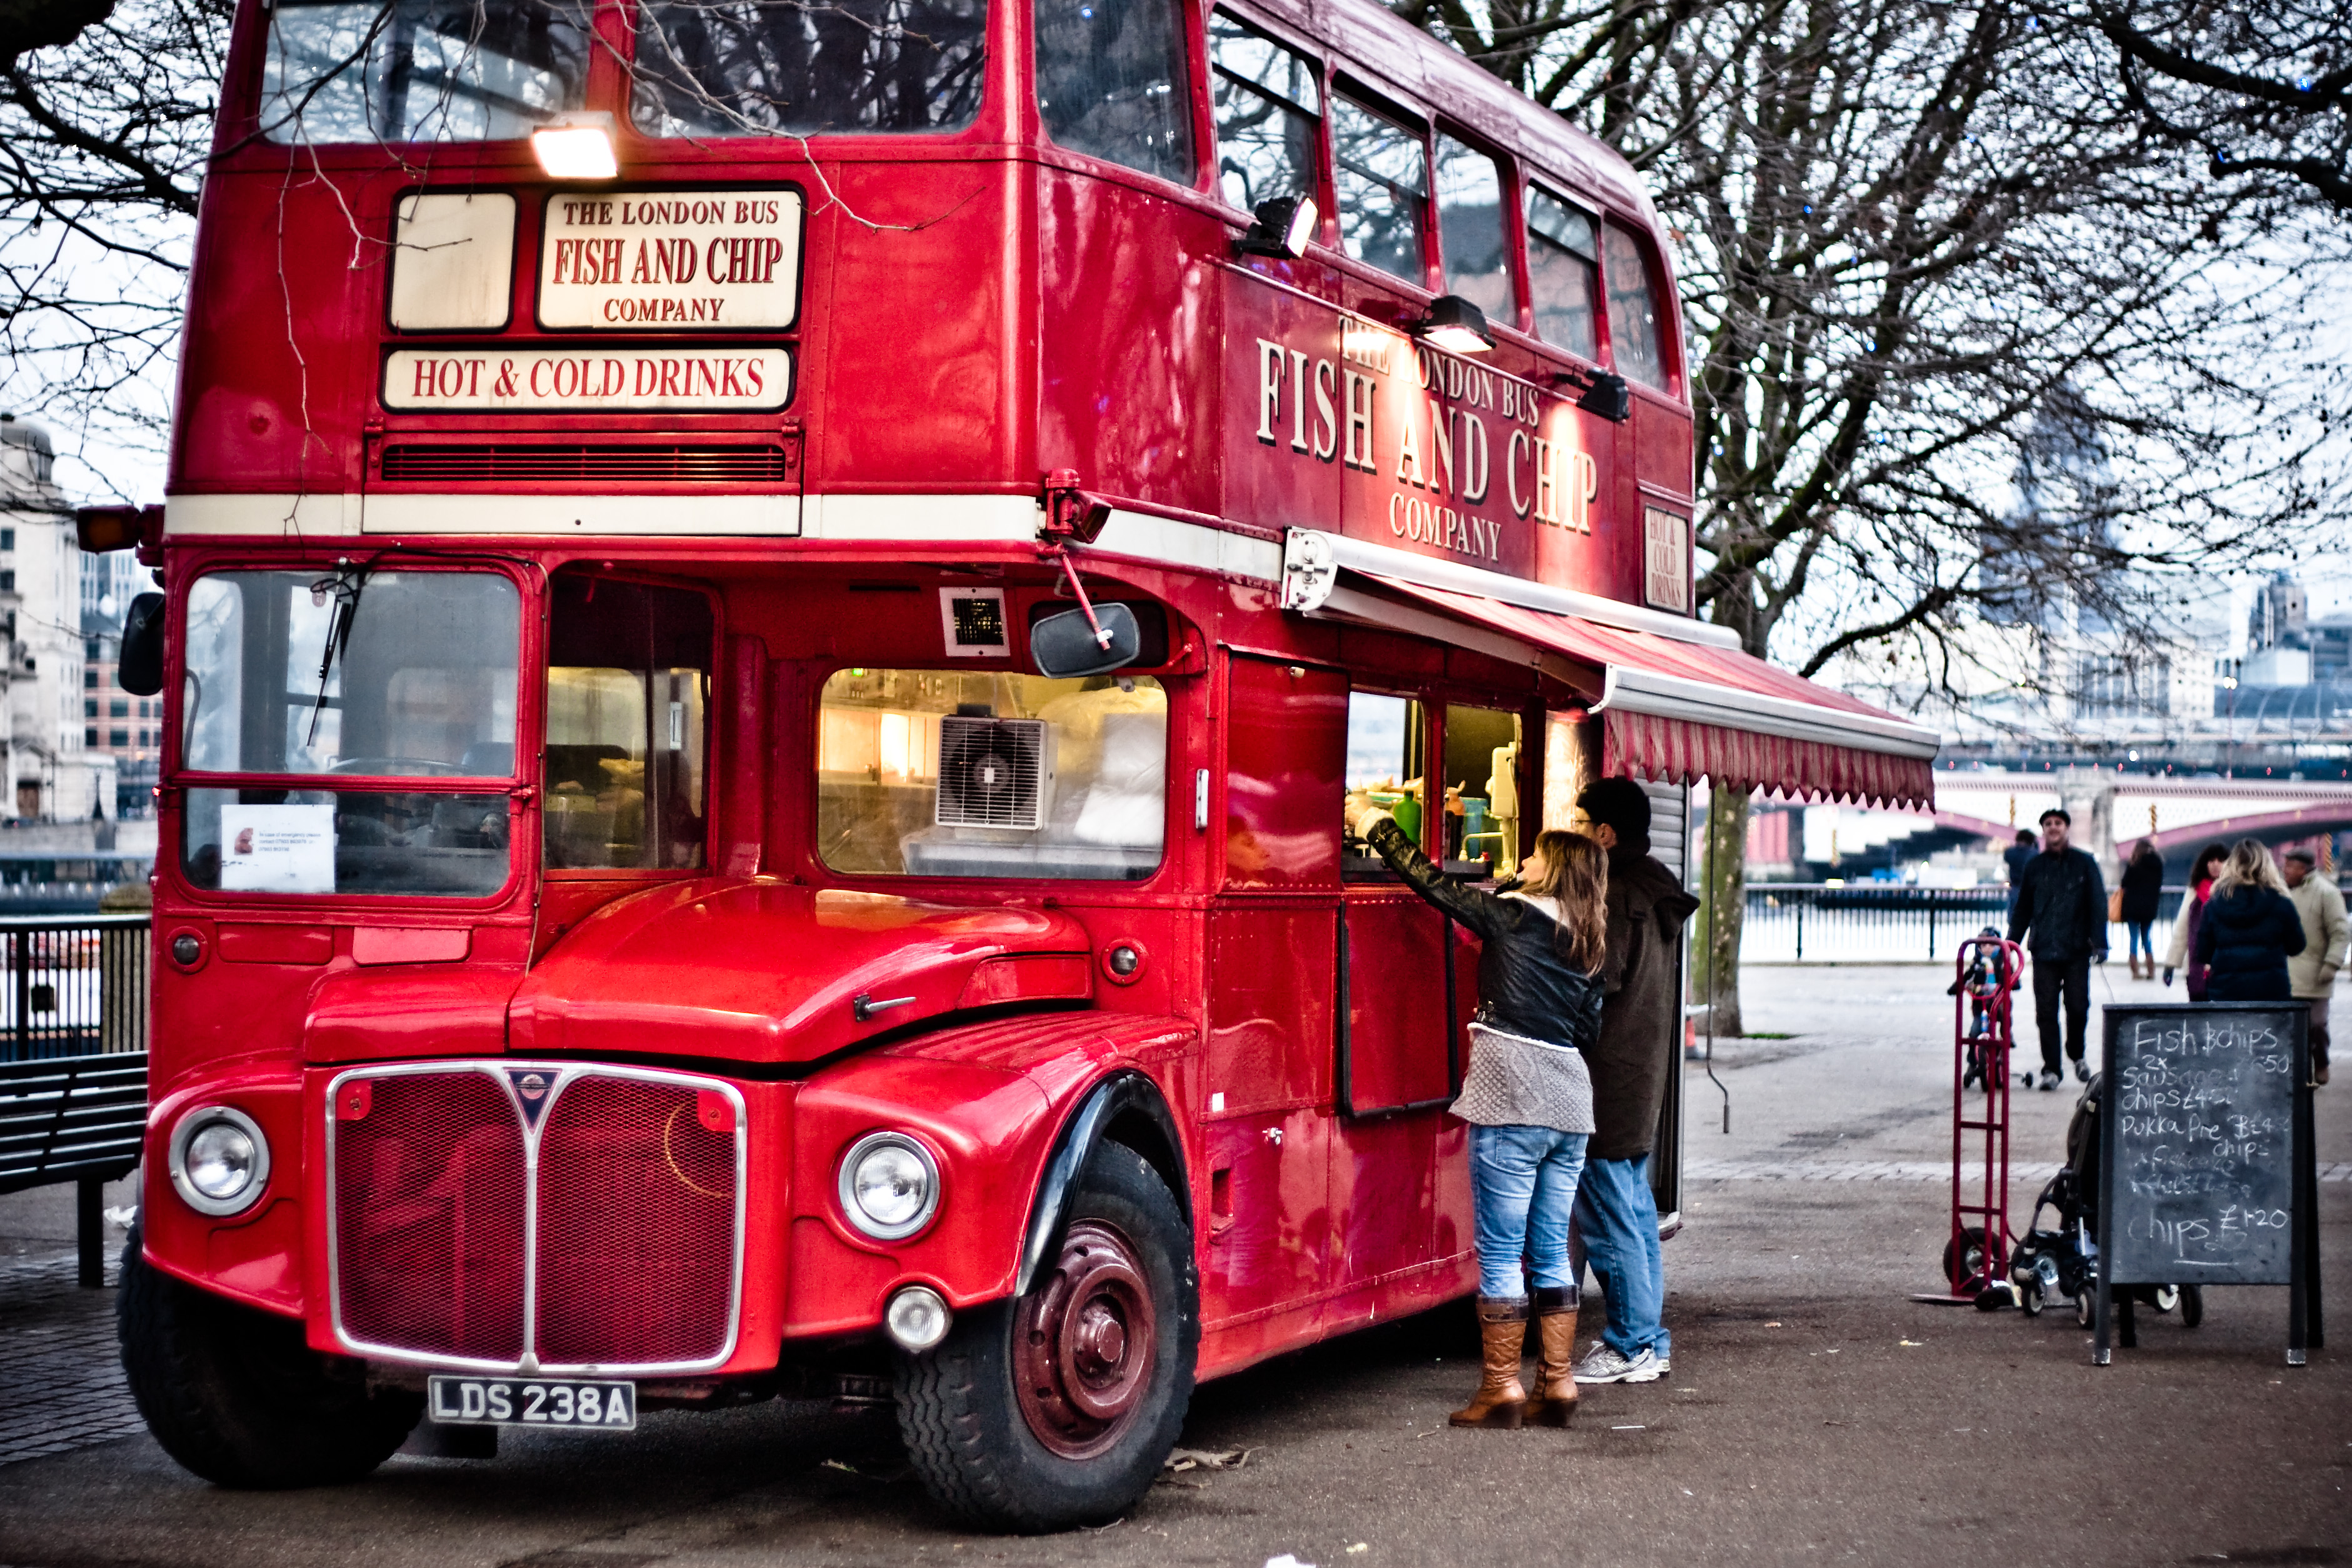 http://upload.wikimedia.org/wikipedia/commons/f/f1/Fish_%26_Chip_Routemaster_%282%29.jpg